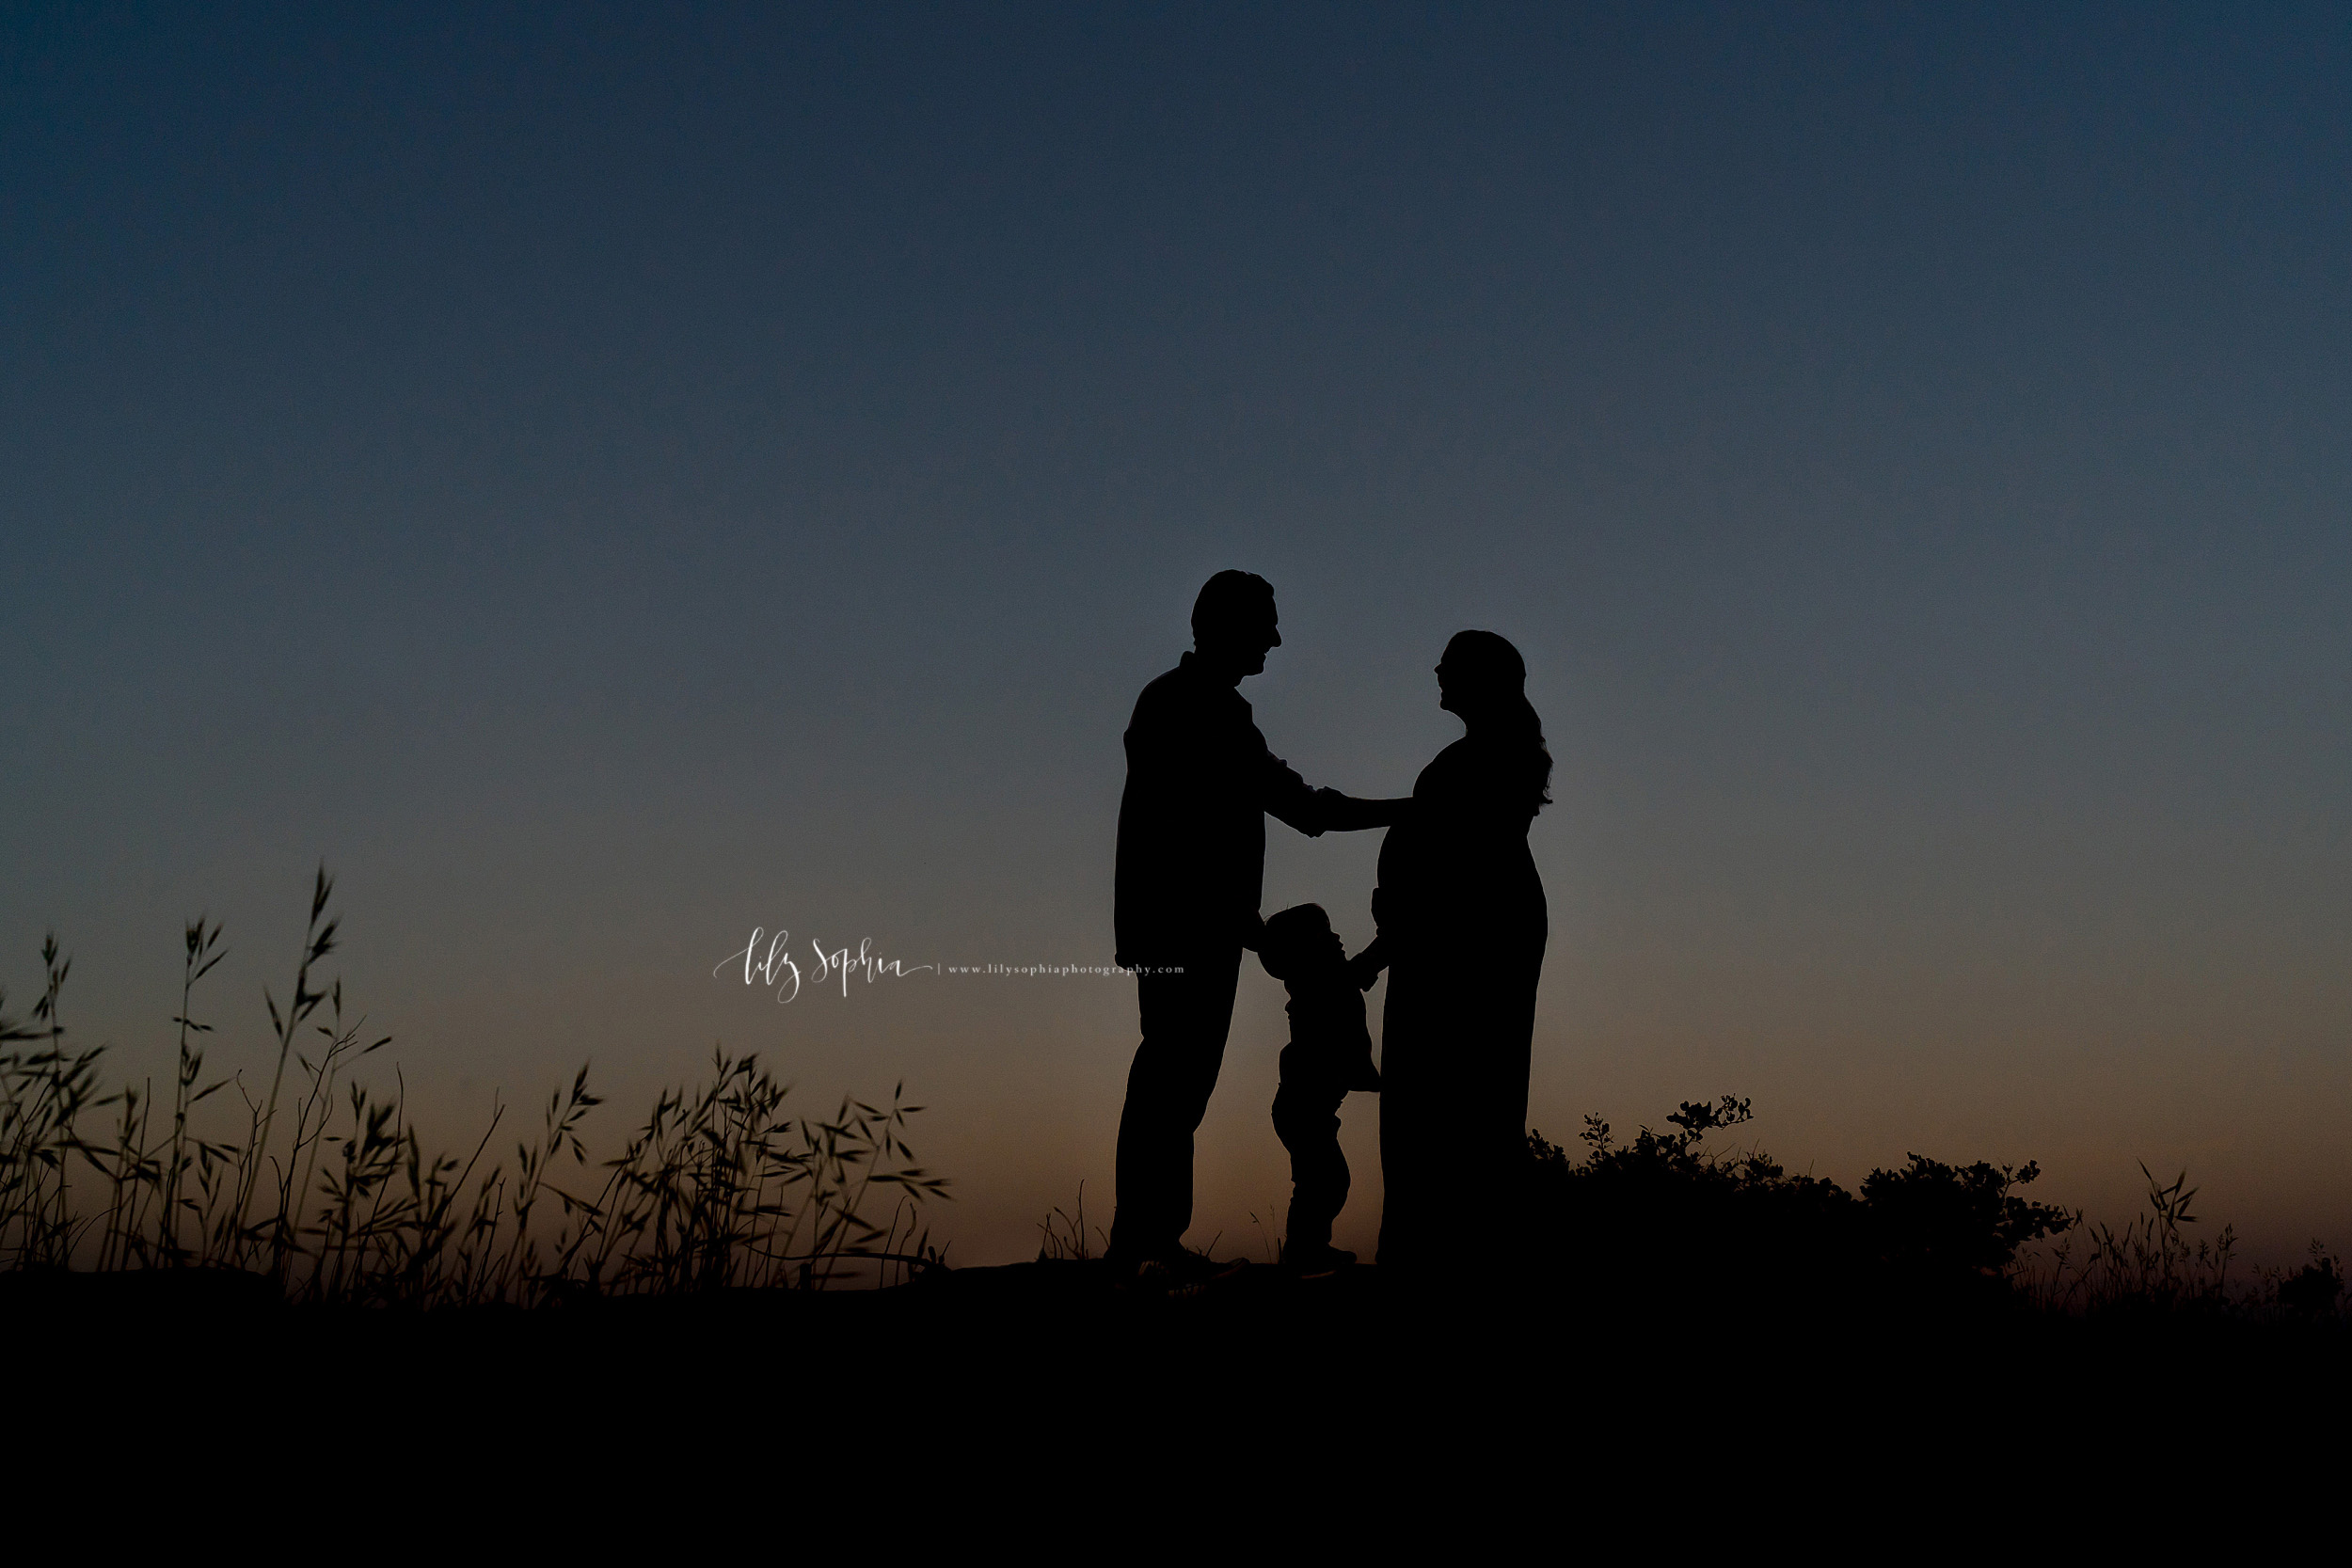 Family of three silhouetted in a maternity photo taken at sunset on a mountain in Atlanta, GA.